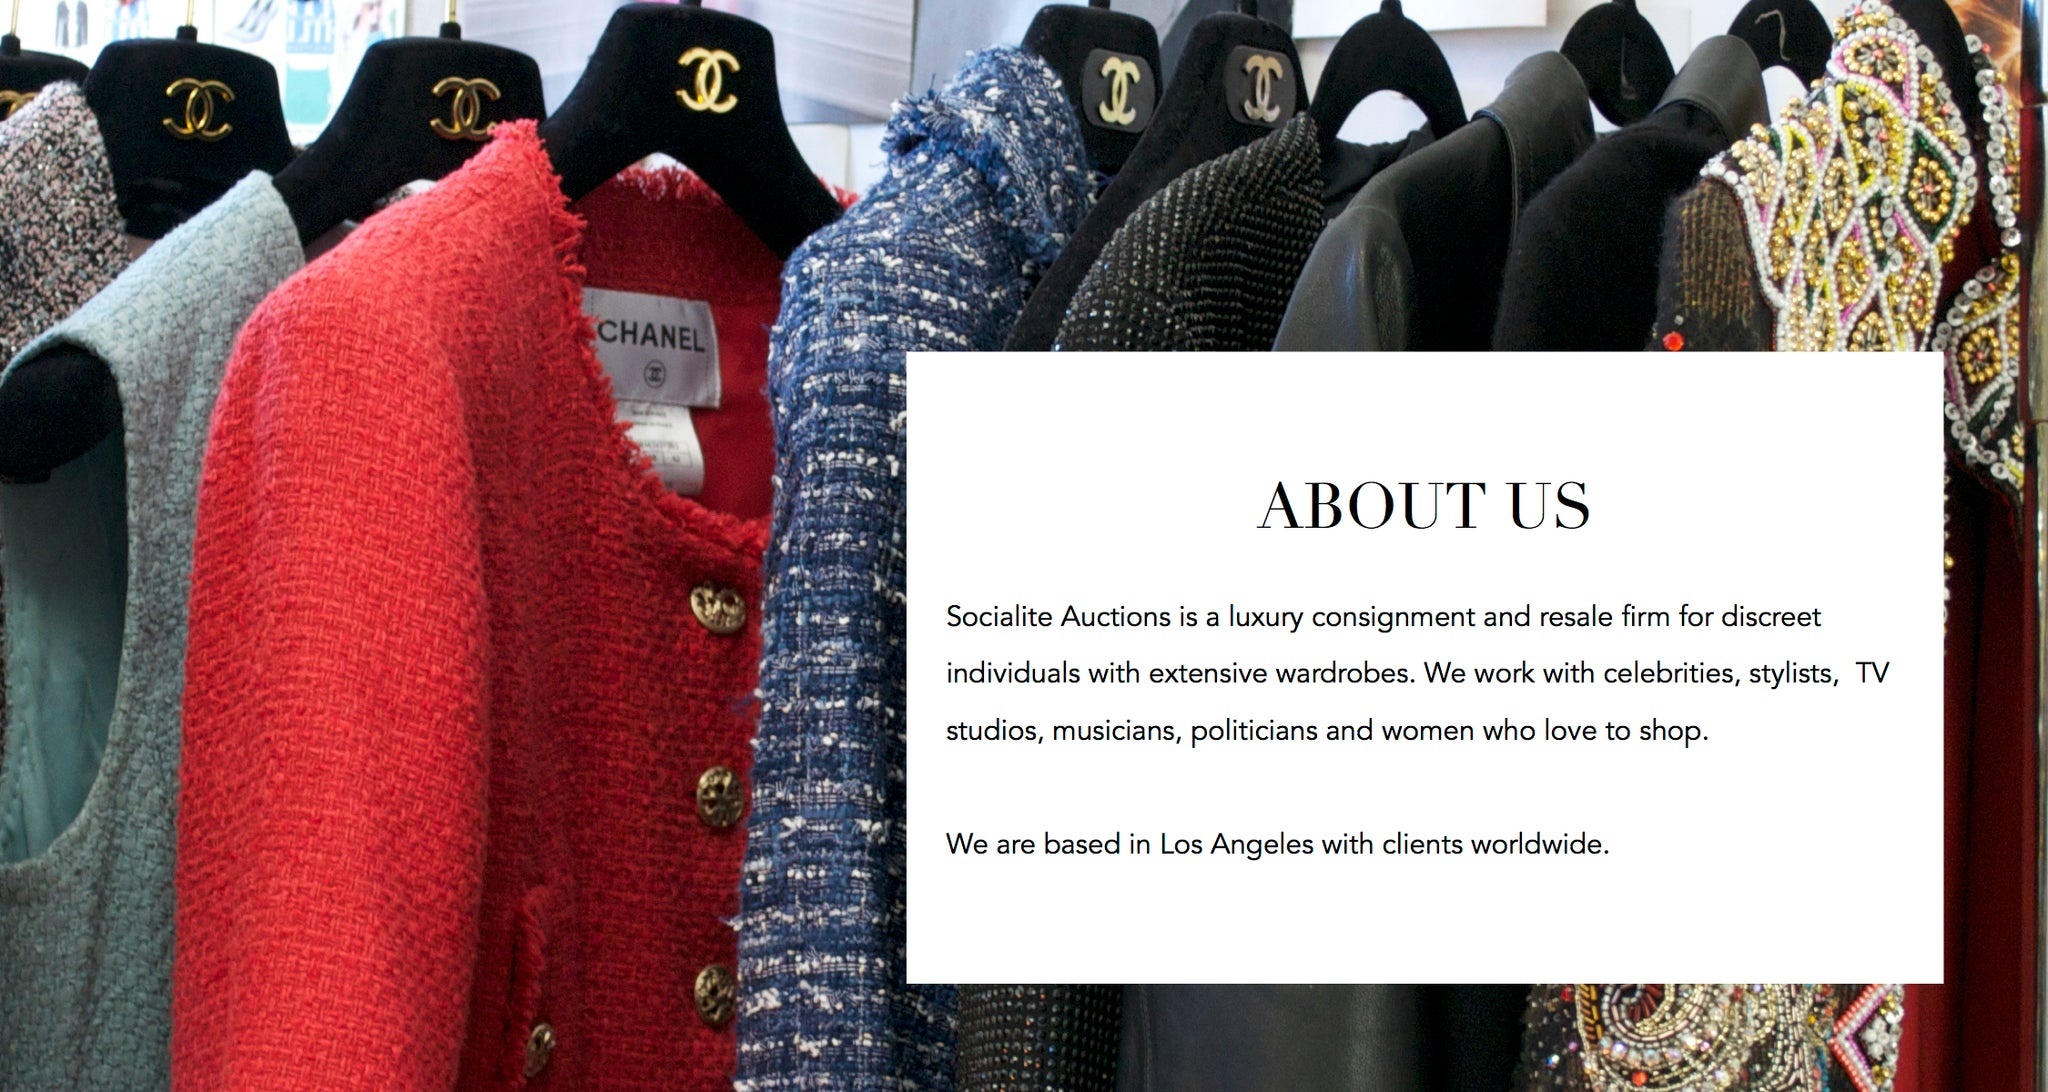 About Socialite Auctions Luxury Consignment & Resale